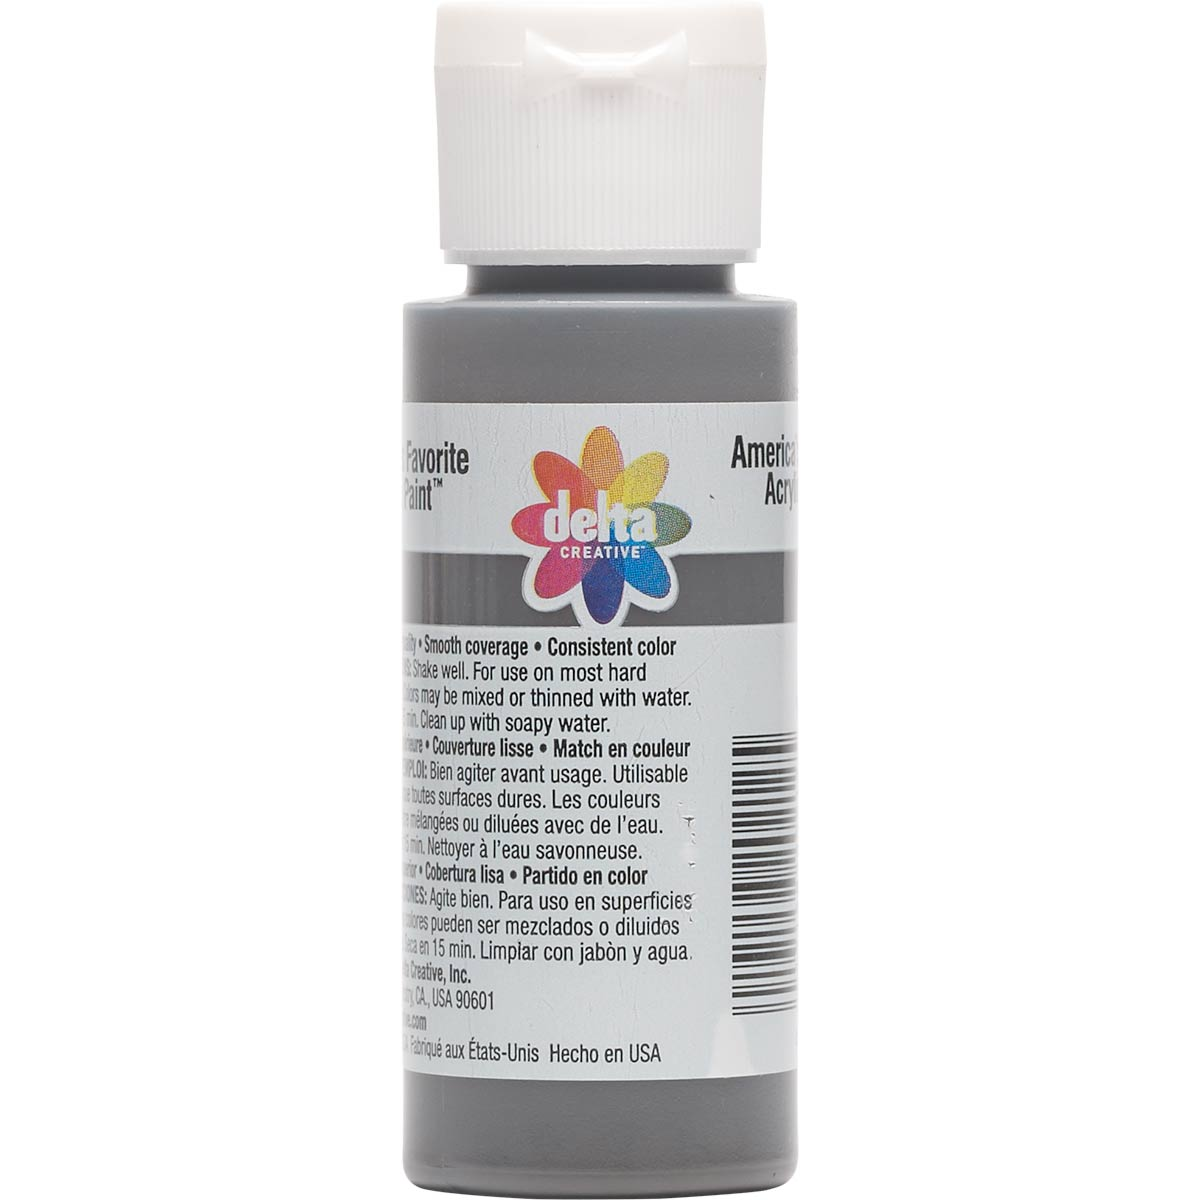 Delta Ceramcoat ® Acrylic Paint - Dark Chocolate, 2 oz.